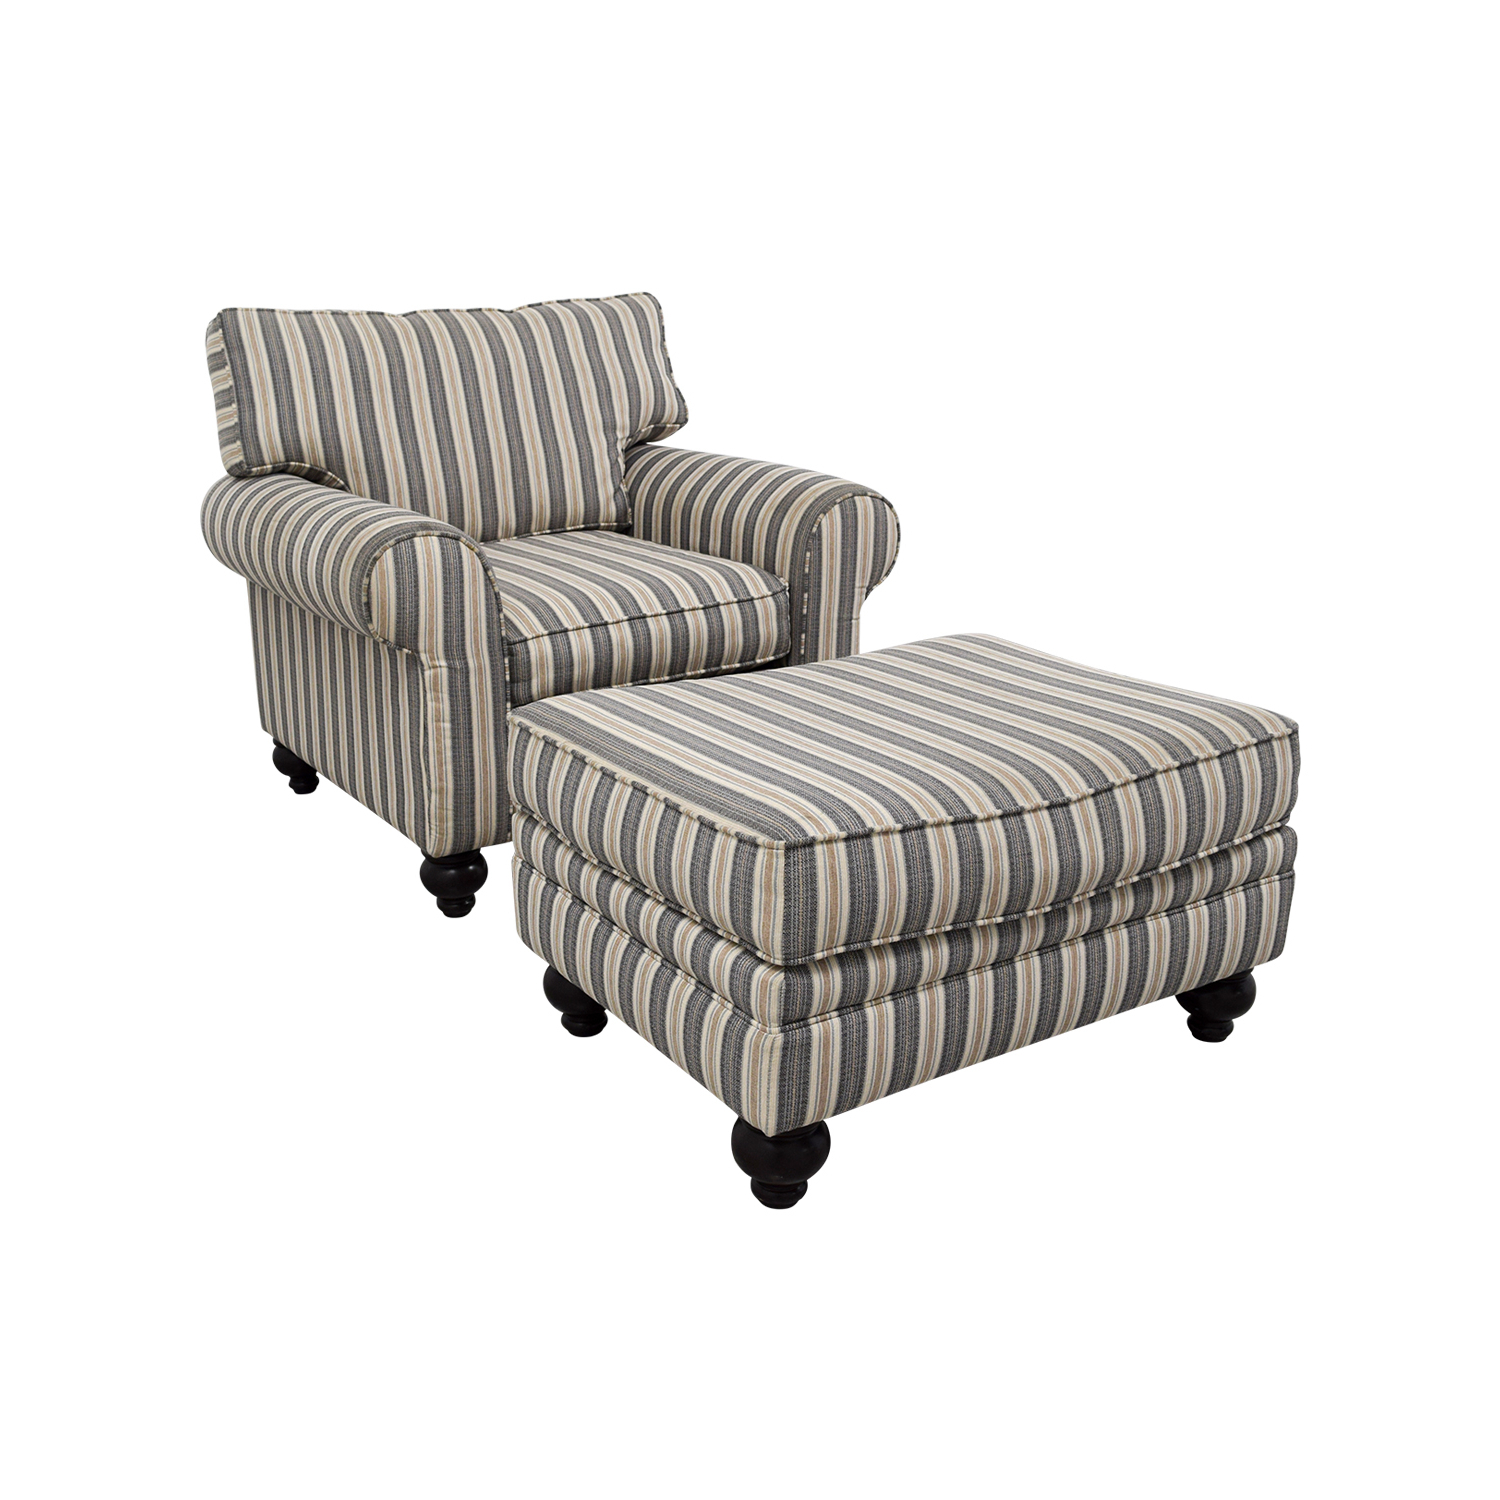 [%90% Off – Bob's Furniture Bob's Furniture Sofa Chair With Ottoman With Regard To Most Up To Date Sofa Chair And Ottoman|sofa Chair And Ottoman Regarding 2019 90% Off – Bob's Furniture Bob's Furniture Sofa Chair With Ottoman|well Known Sofa Chair And Ottoman For 90% Off – Bob's Furniture Bob's Furniture Sofa Chair With Ottoman|trendy 90% Off – Bob's Furniture Bob's Furniture Sofa Chair With Ottoman With Sofa Chair And Ottoman%] (View 17 of 20)